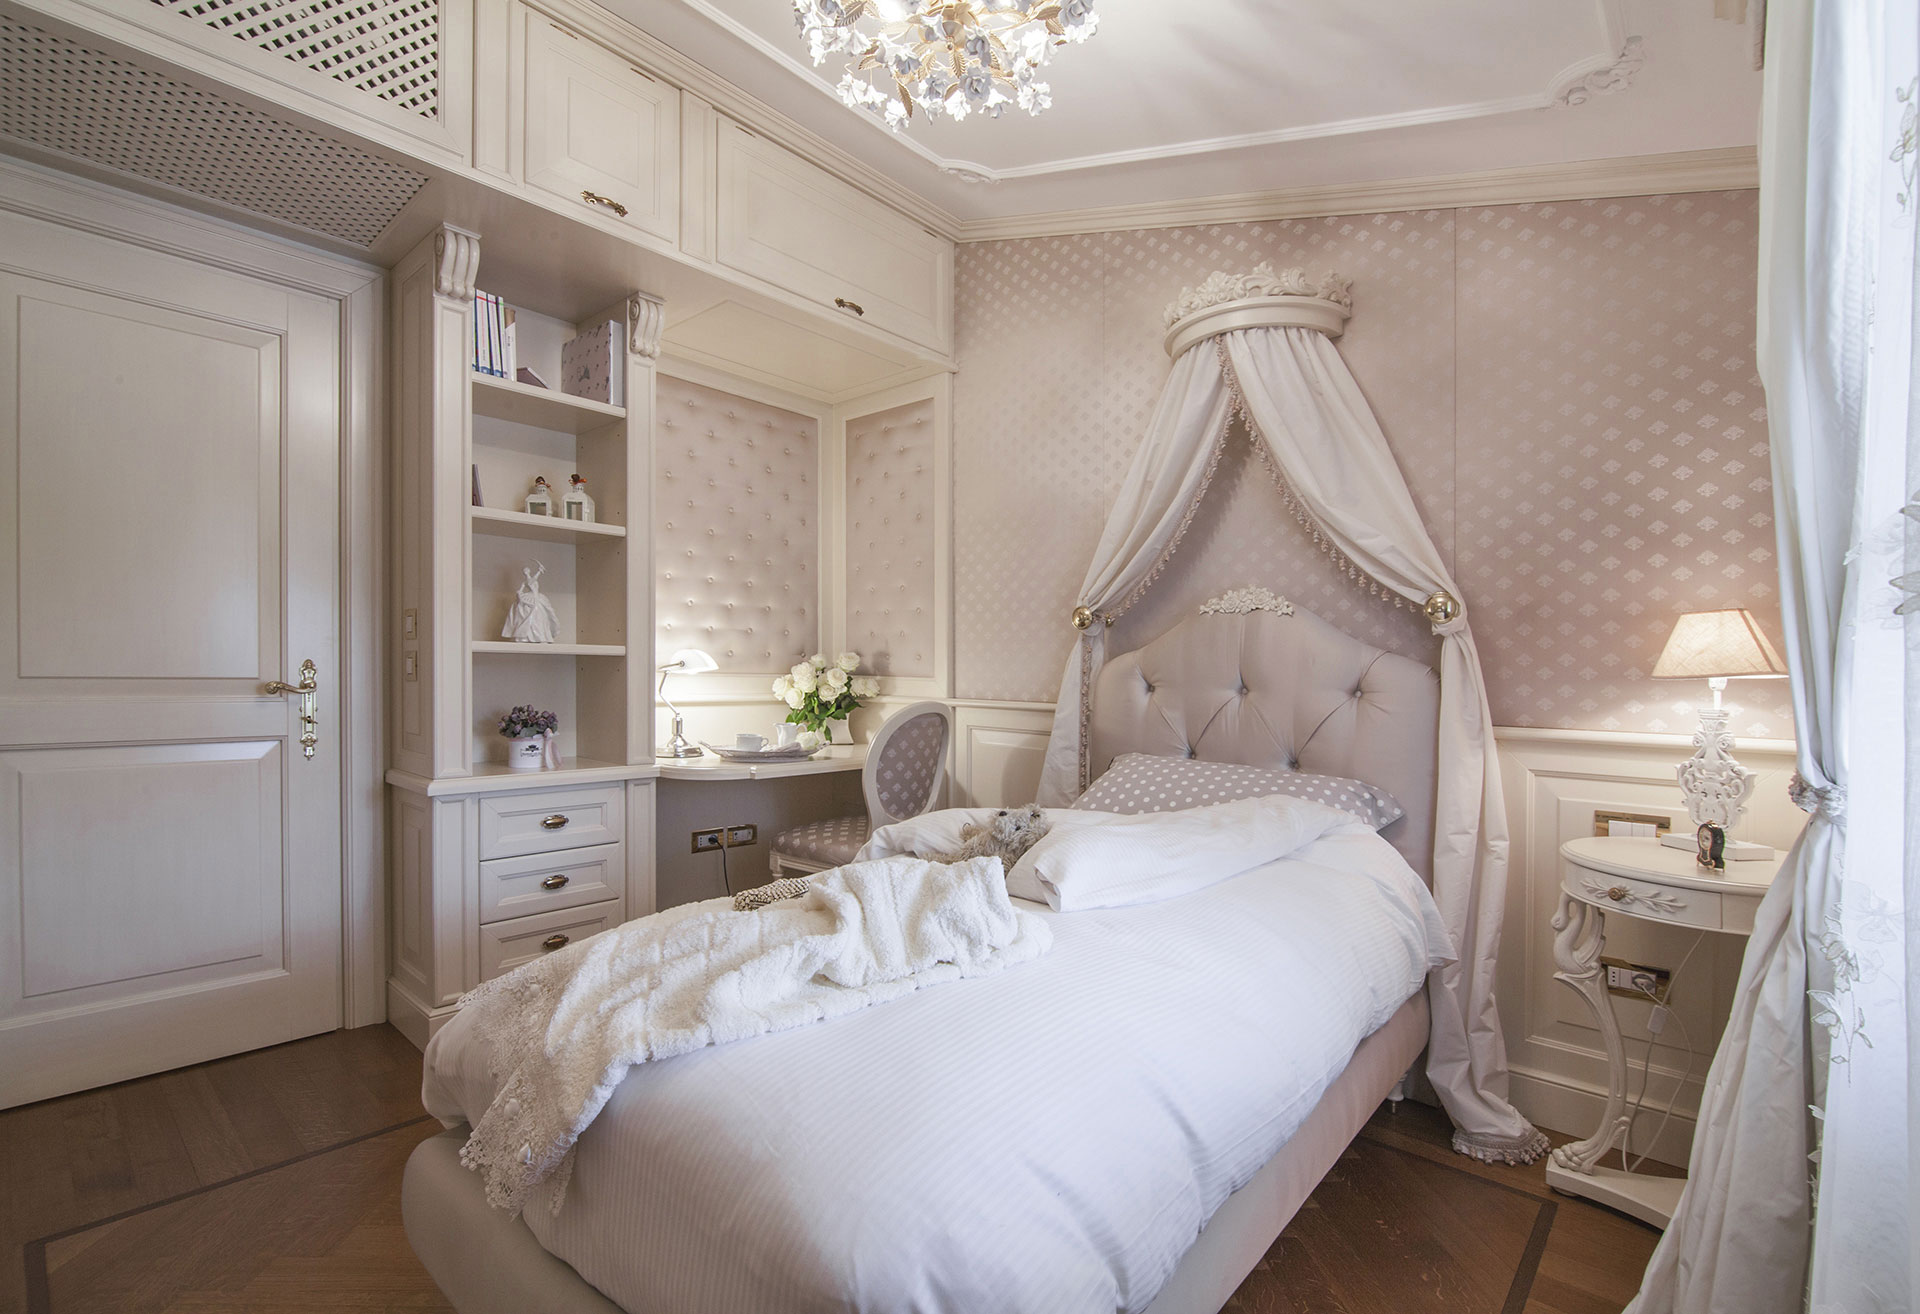 Faoma bespoke girl's bed